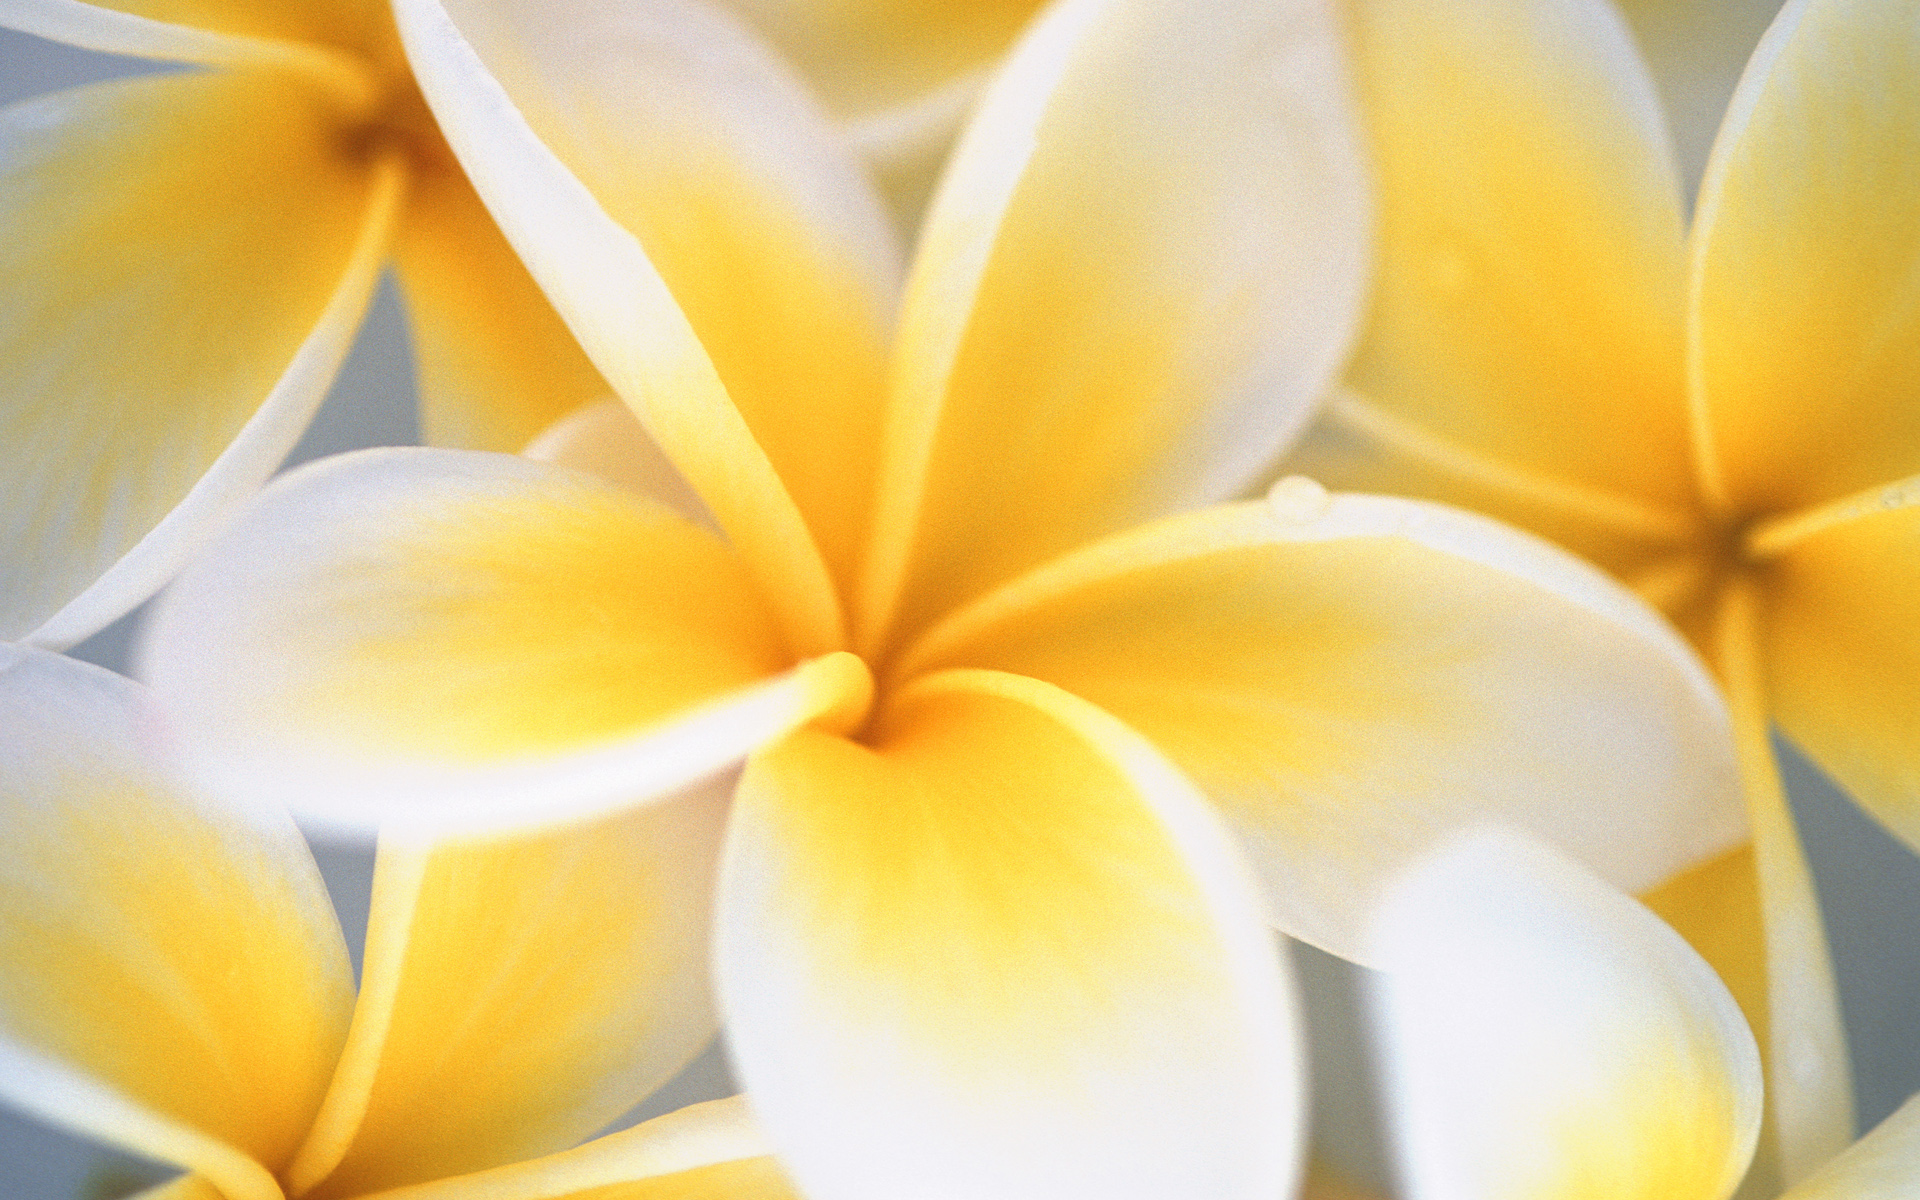 White yellow flowers 12 widescreen wallpaper hdflowerwallpaper white yellow flowers free wallpaper mightylinksfo Image collections